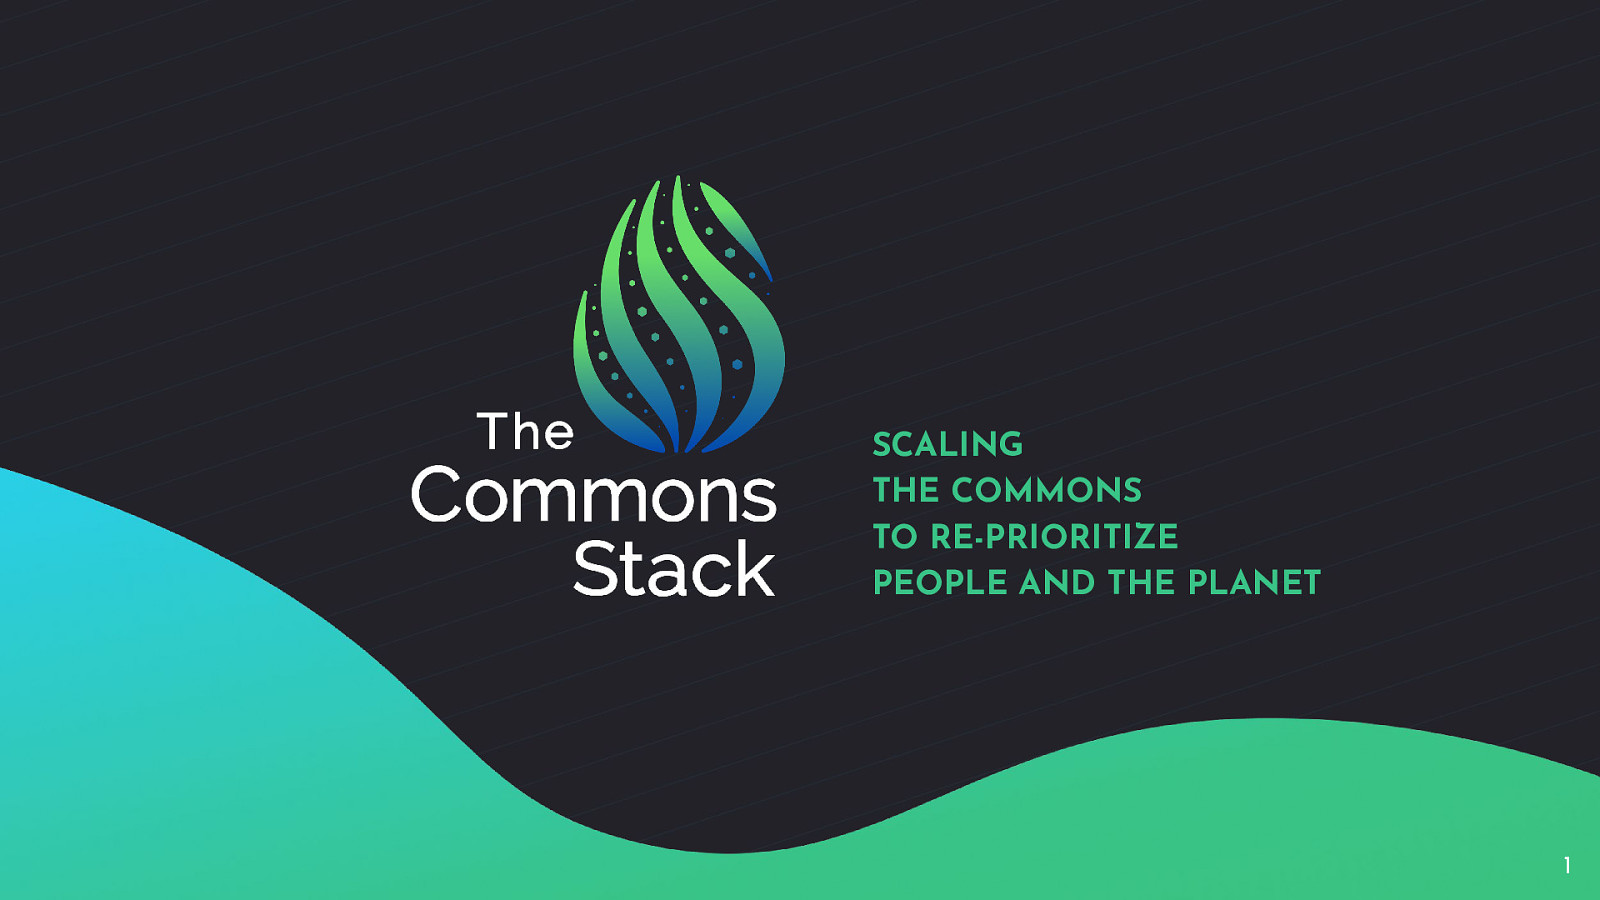 The Commons Stack: Scaling the Commons to Re-prioritize People and the Planet